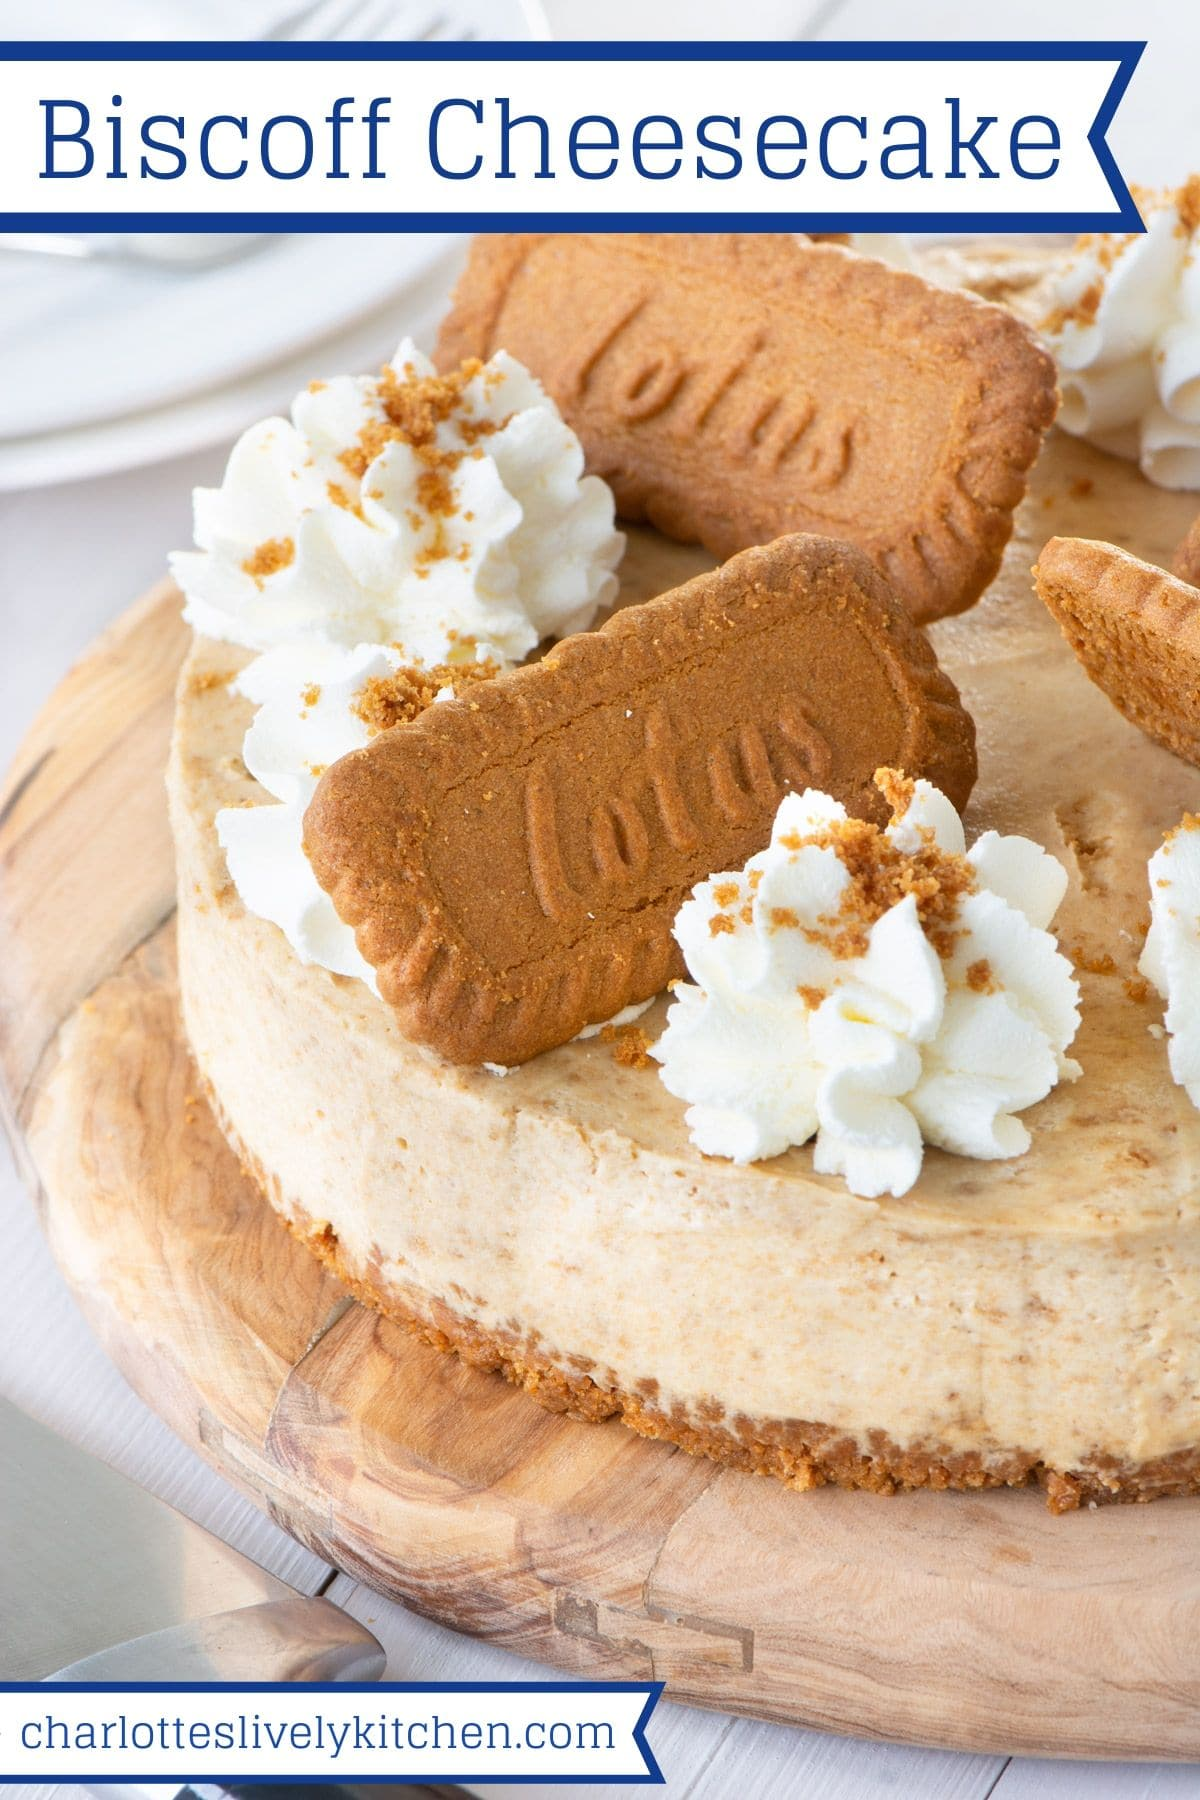 "The finished Biscoff cheesecake. The image also includes the title ""Biscoff Cheesecake"" in blue."